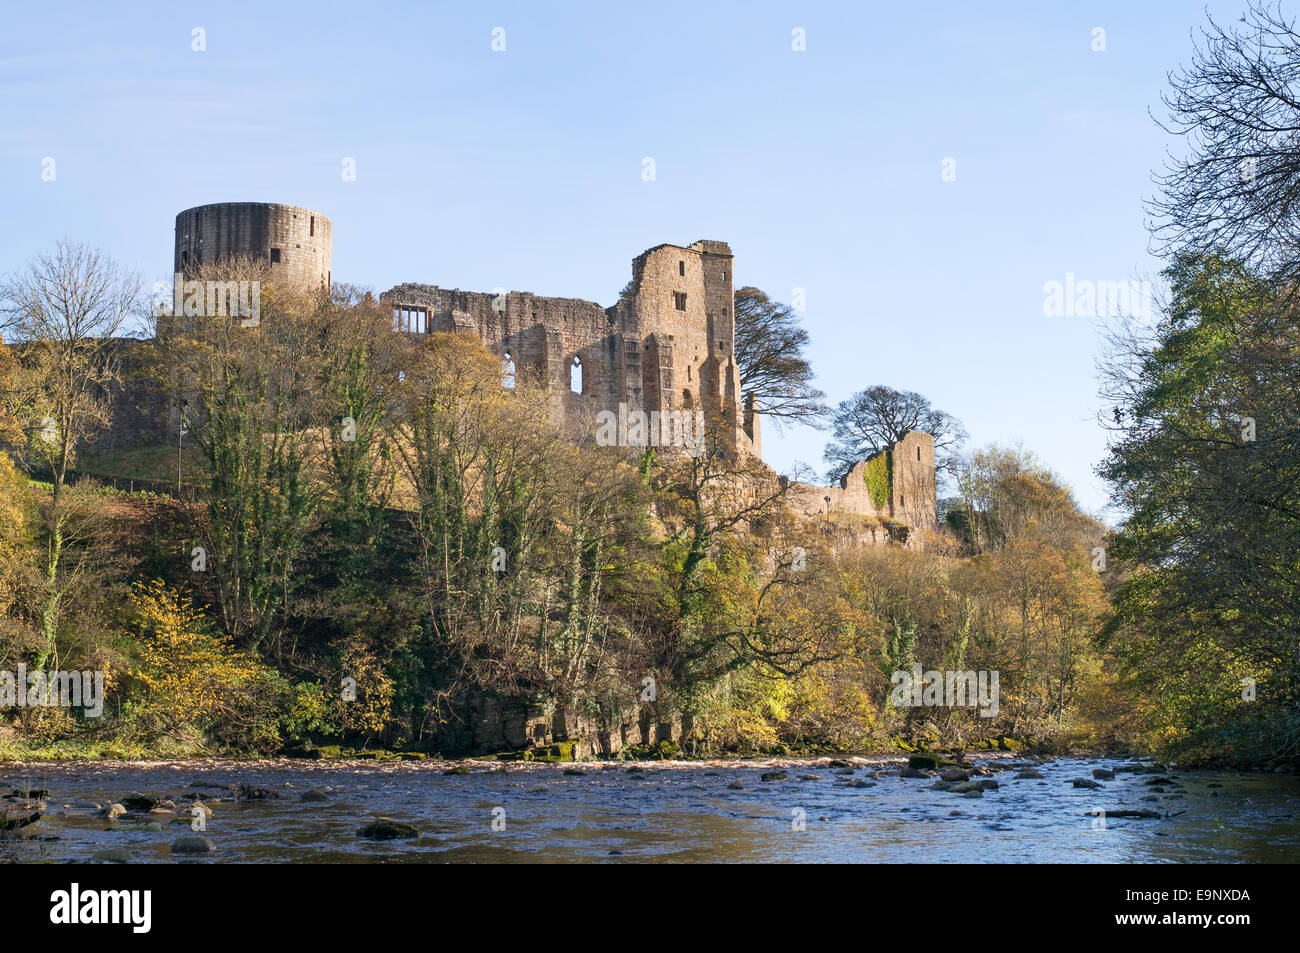 Fortress at Barnard Castle above the river Tees, north east England, UK - Stock Image